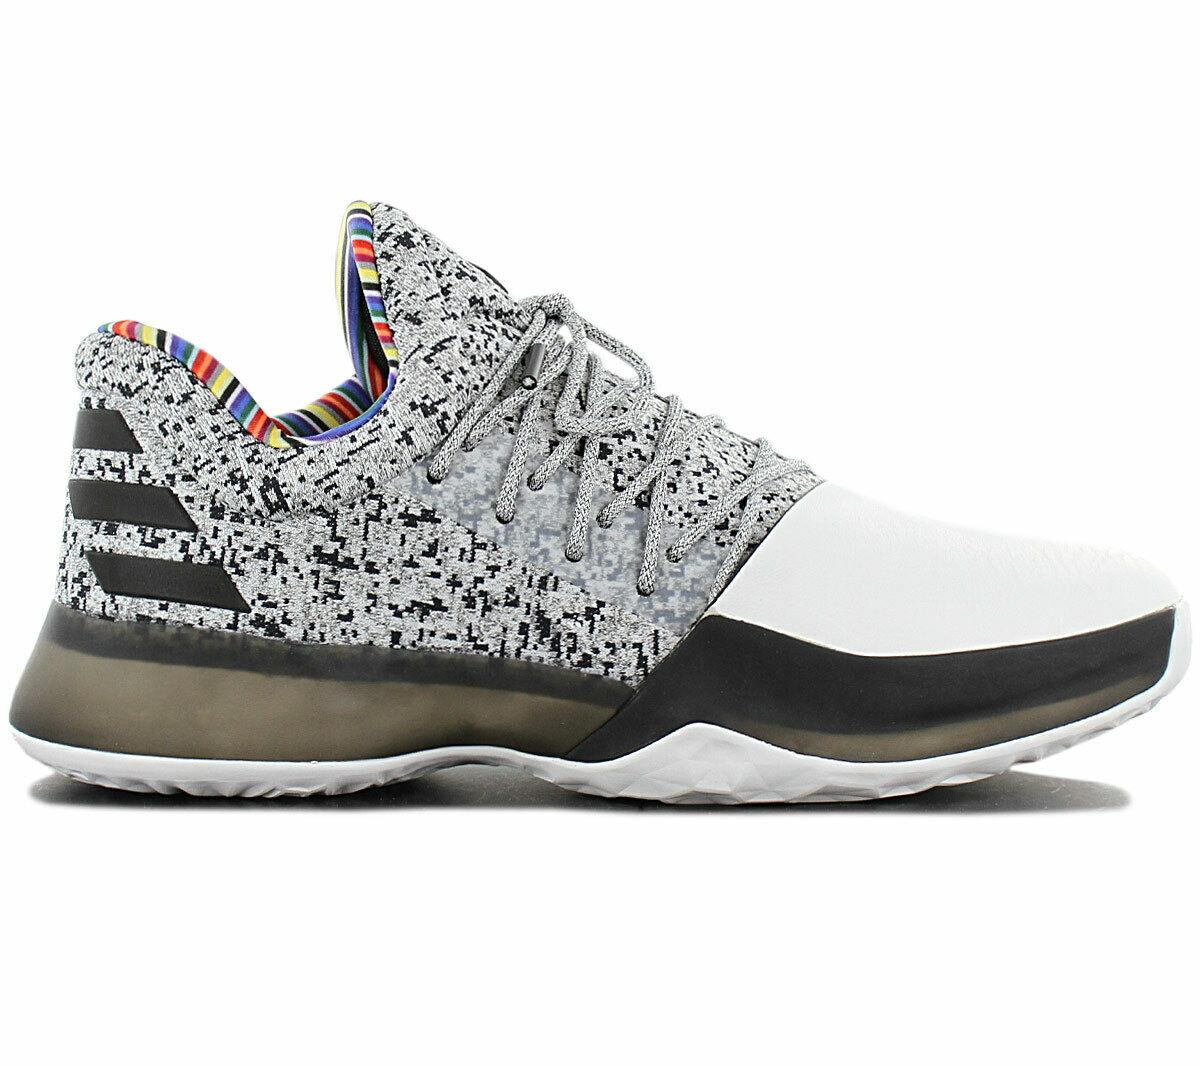 Adidas Harden Vol. 1 Bhm Boost BY3473 Black History Month - Arthur Ashe Edition